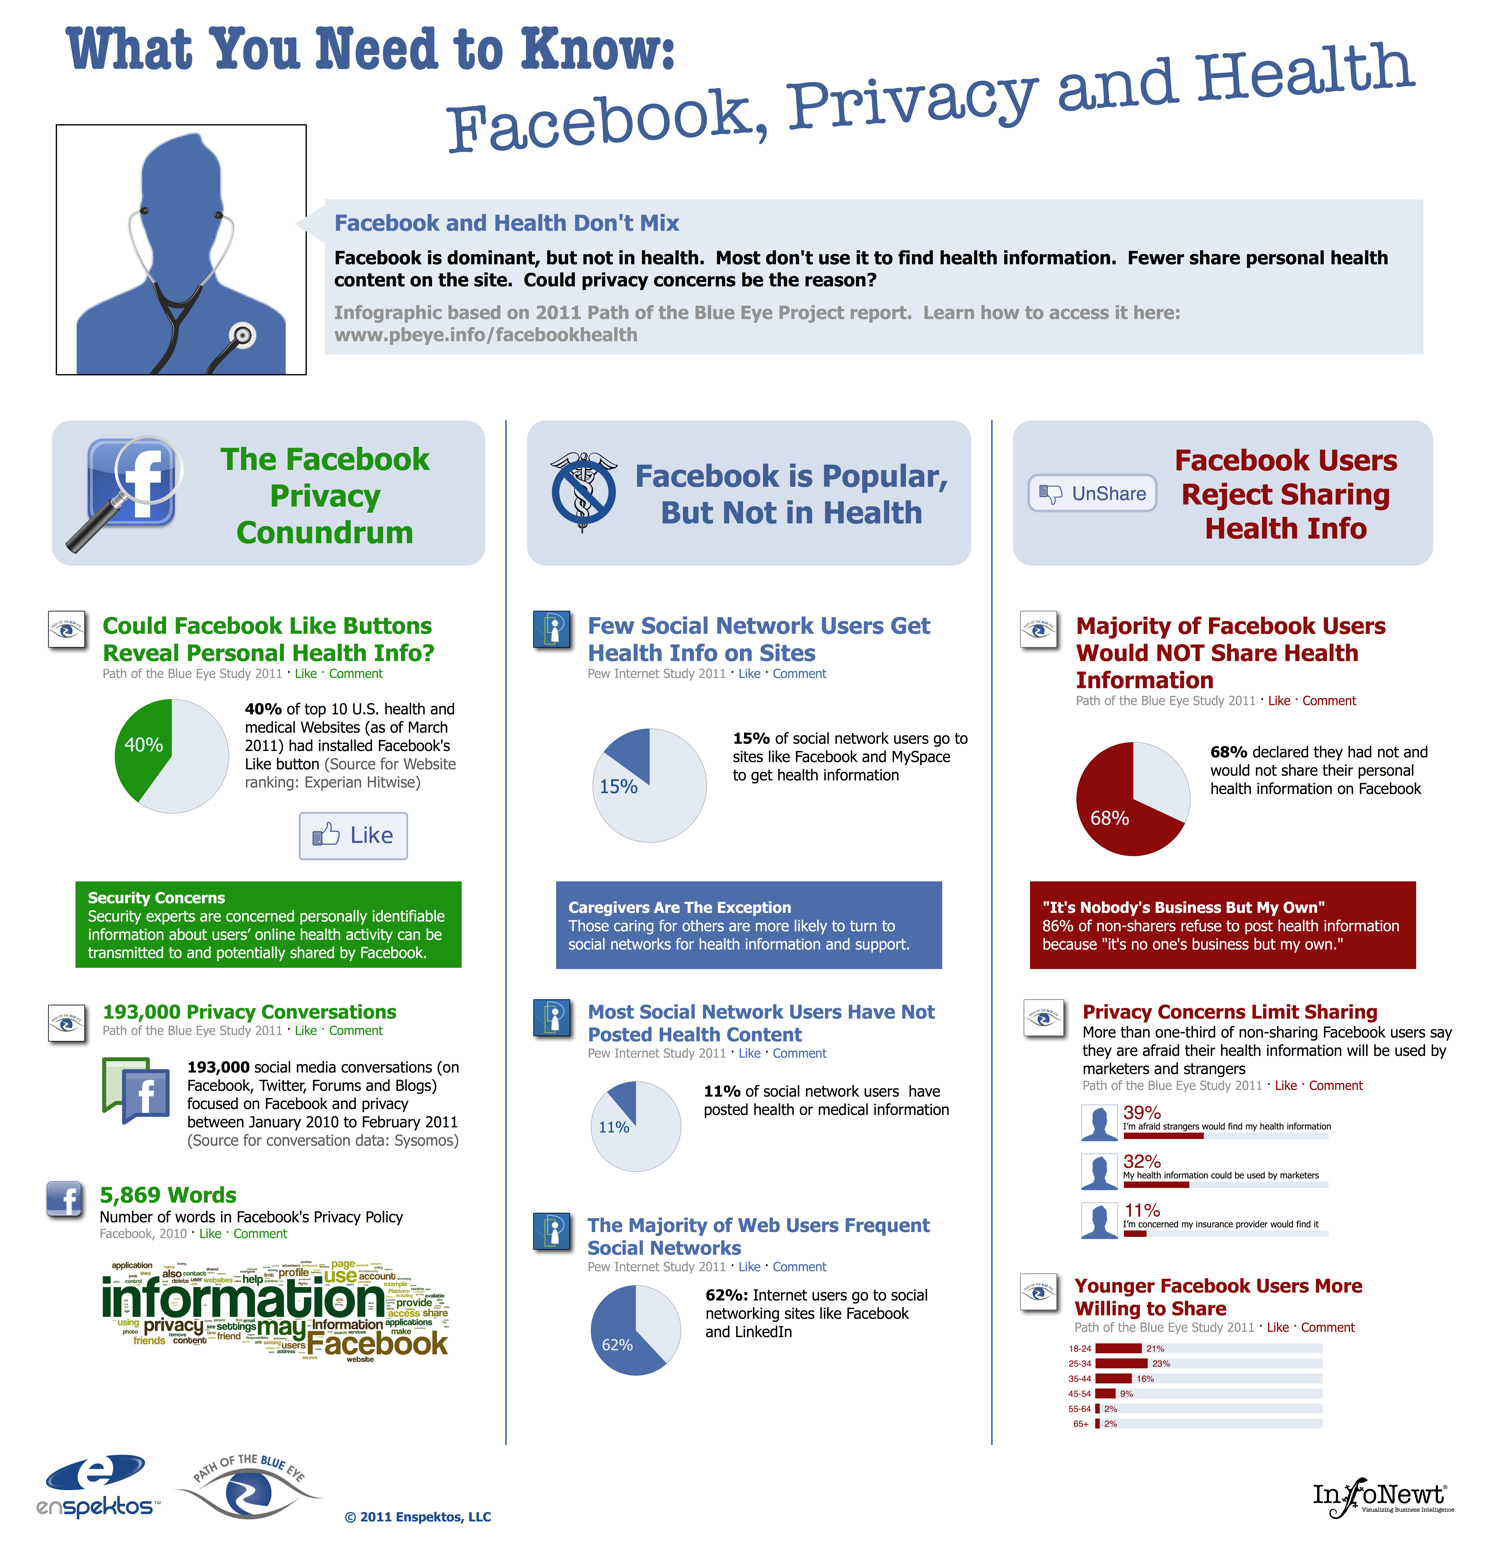 Facebook: Privacy and Health